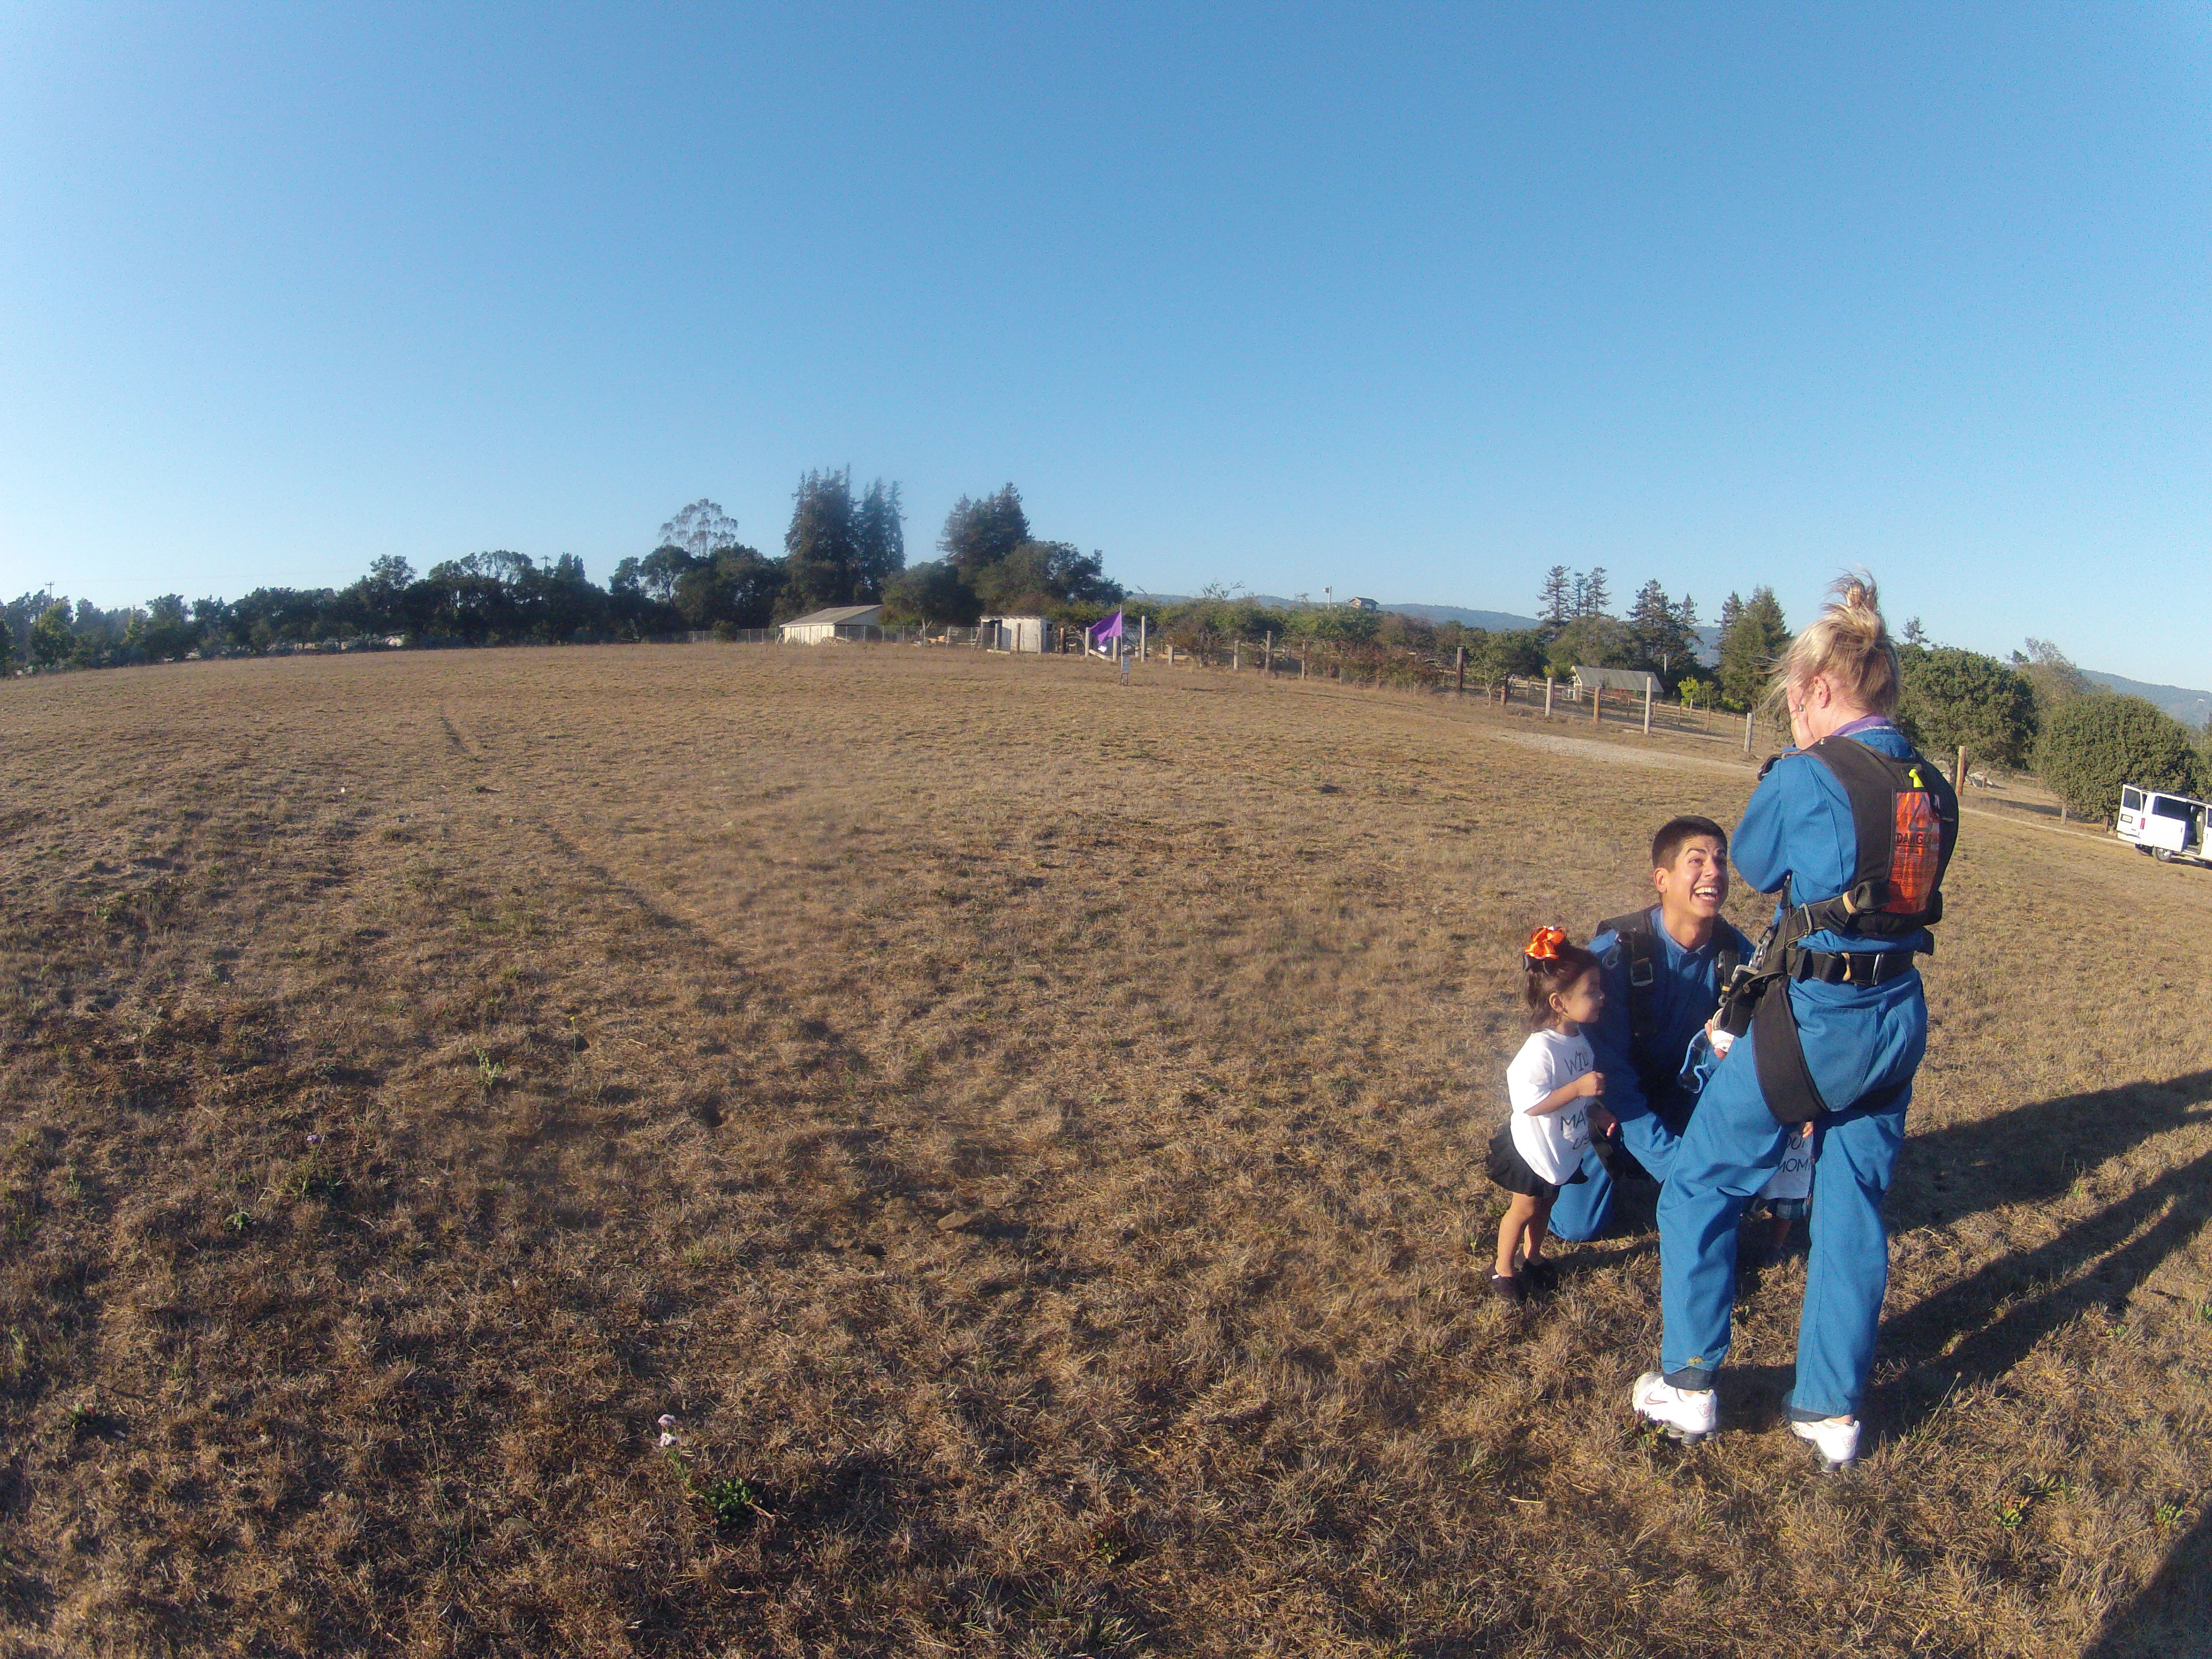 Image 8 of Sky Diving Marriage Proposal